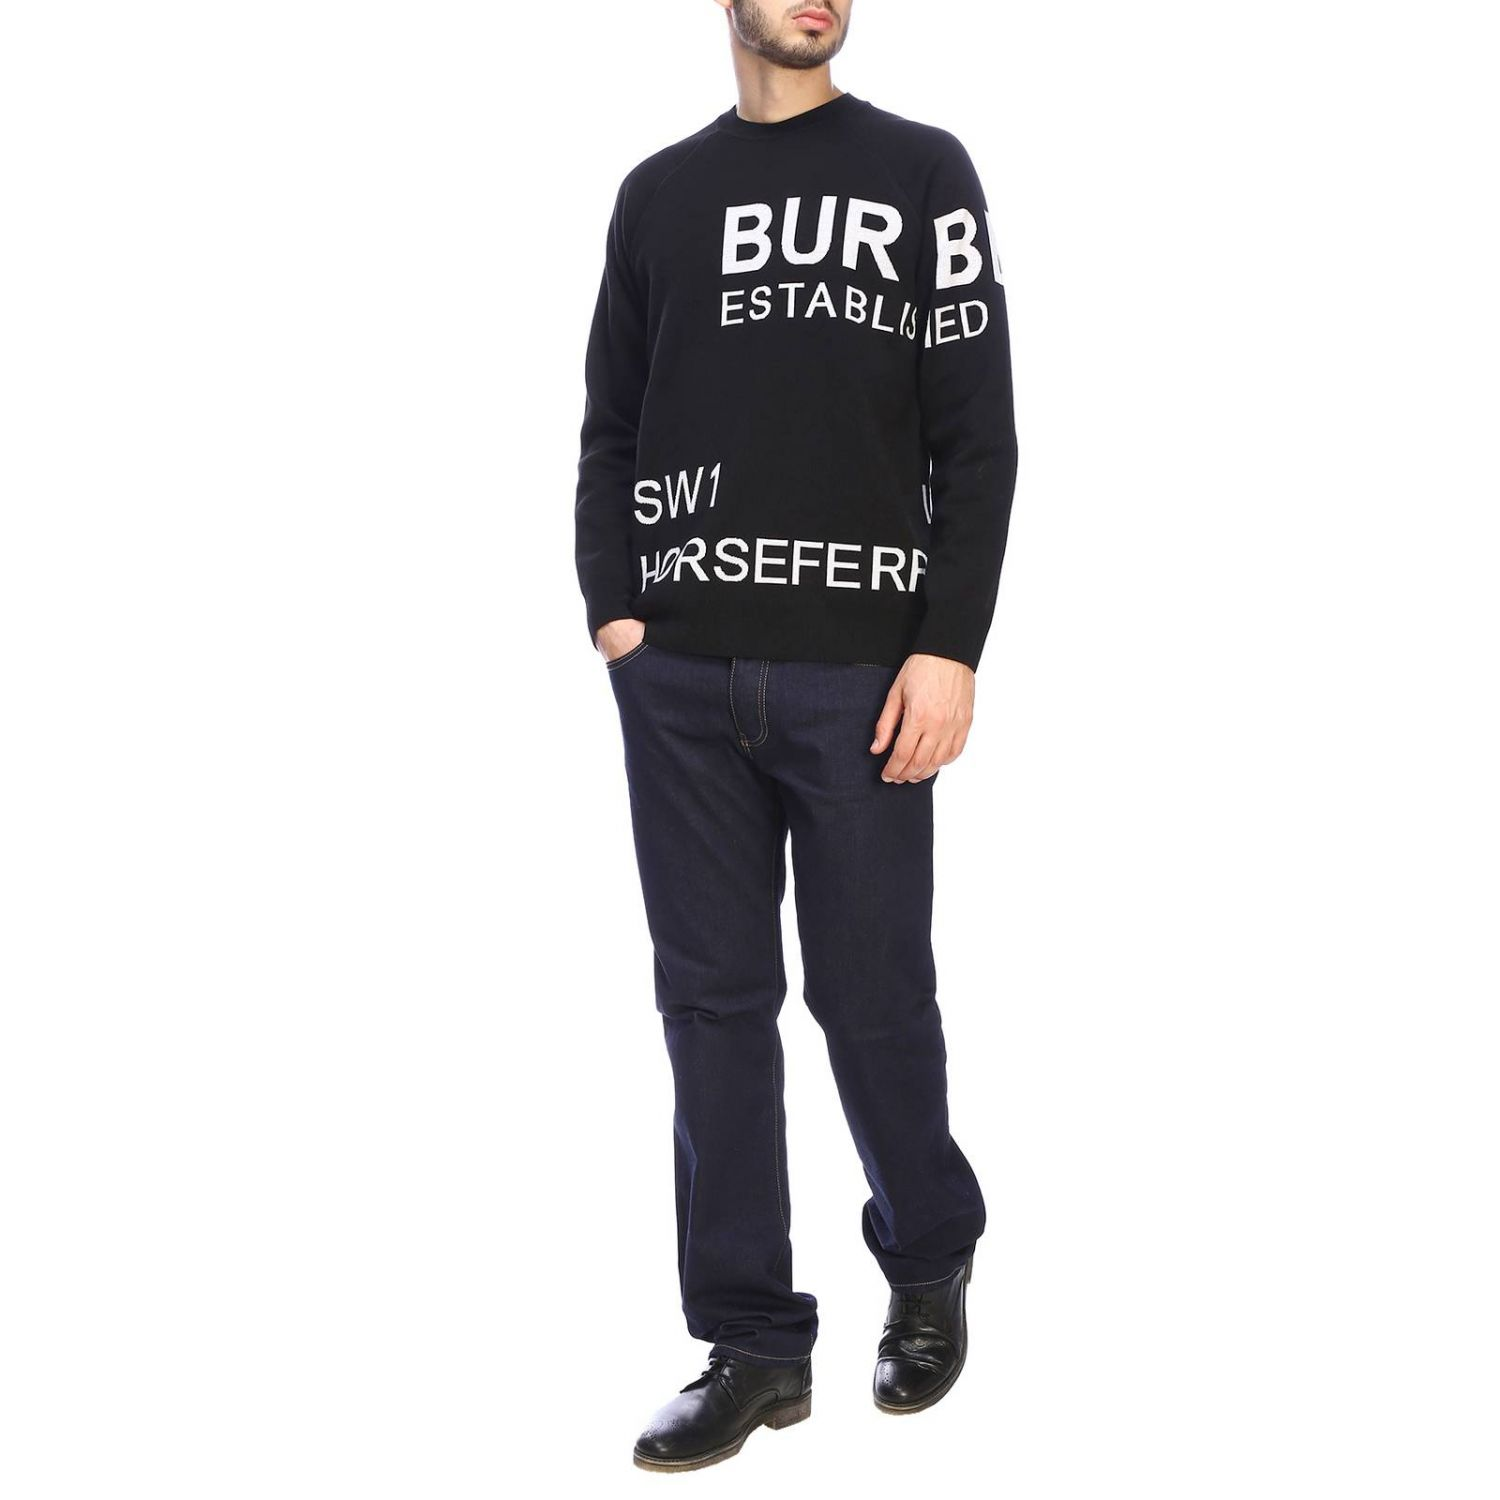 Burberry crewneck sweater with logo black 2